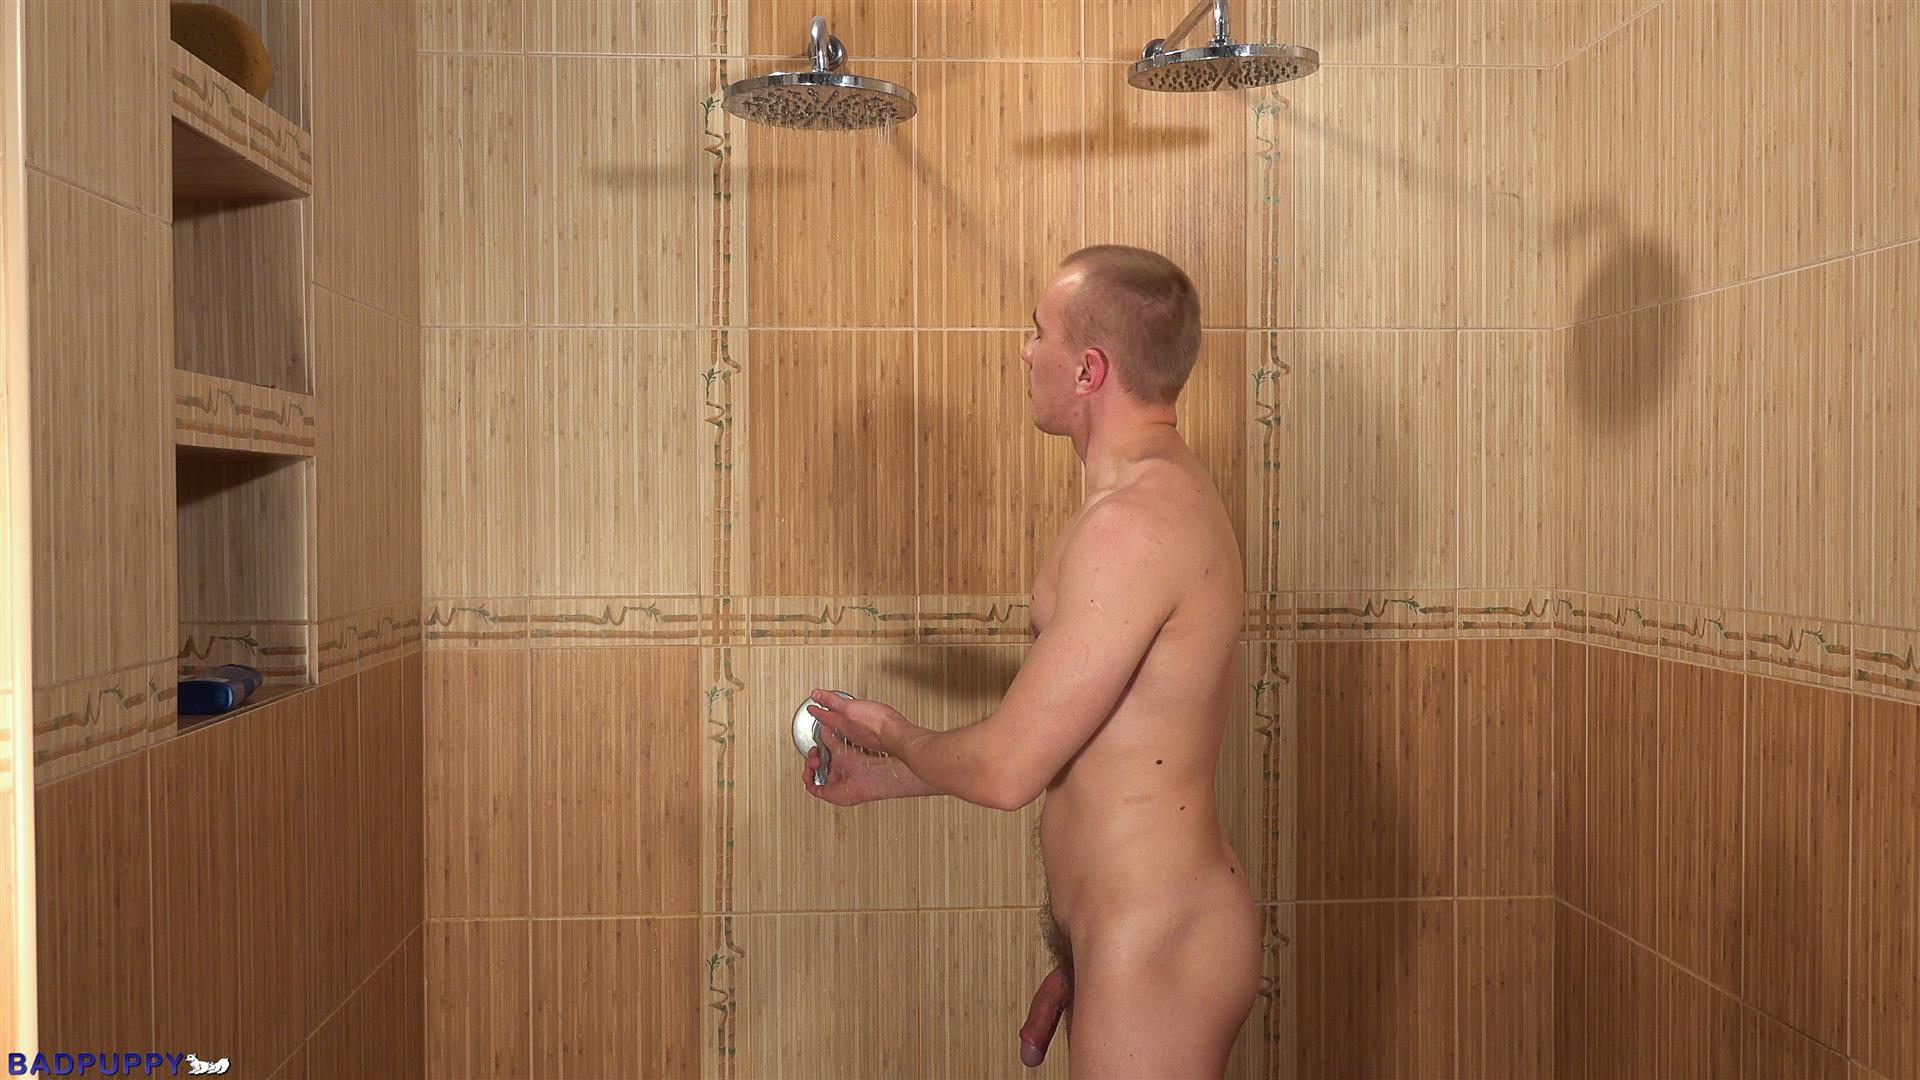 Oleg-Moloda-Badpuppy-Straight-Czech-Jock-With-Big-Uncut-Cock-Amateur-Gay-Porn-20 Straight Czech Muscle Jock Auditions For Gay Porn